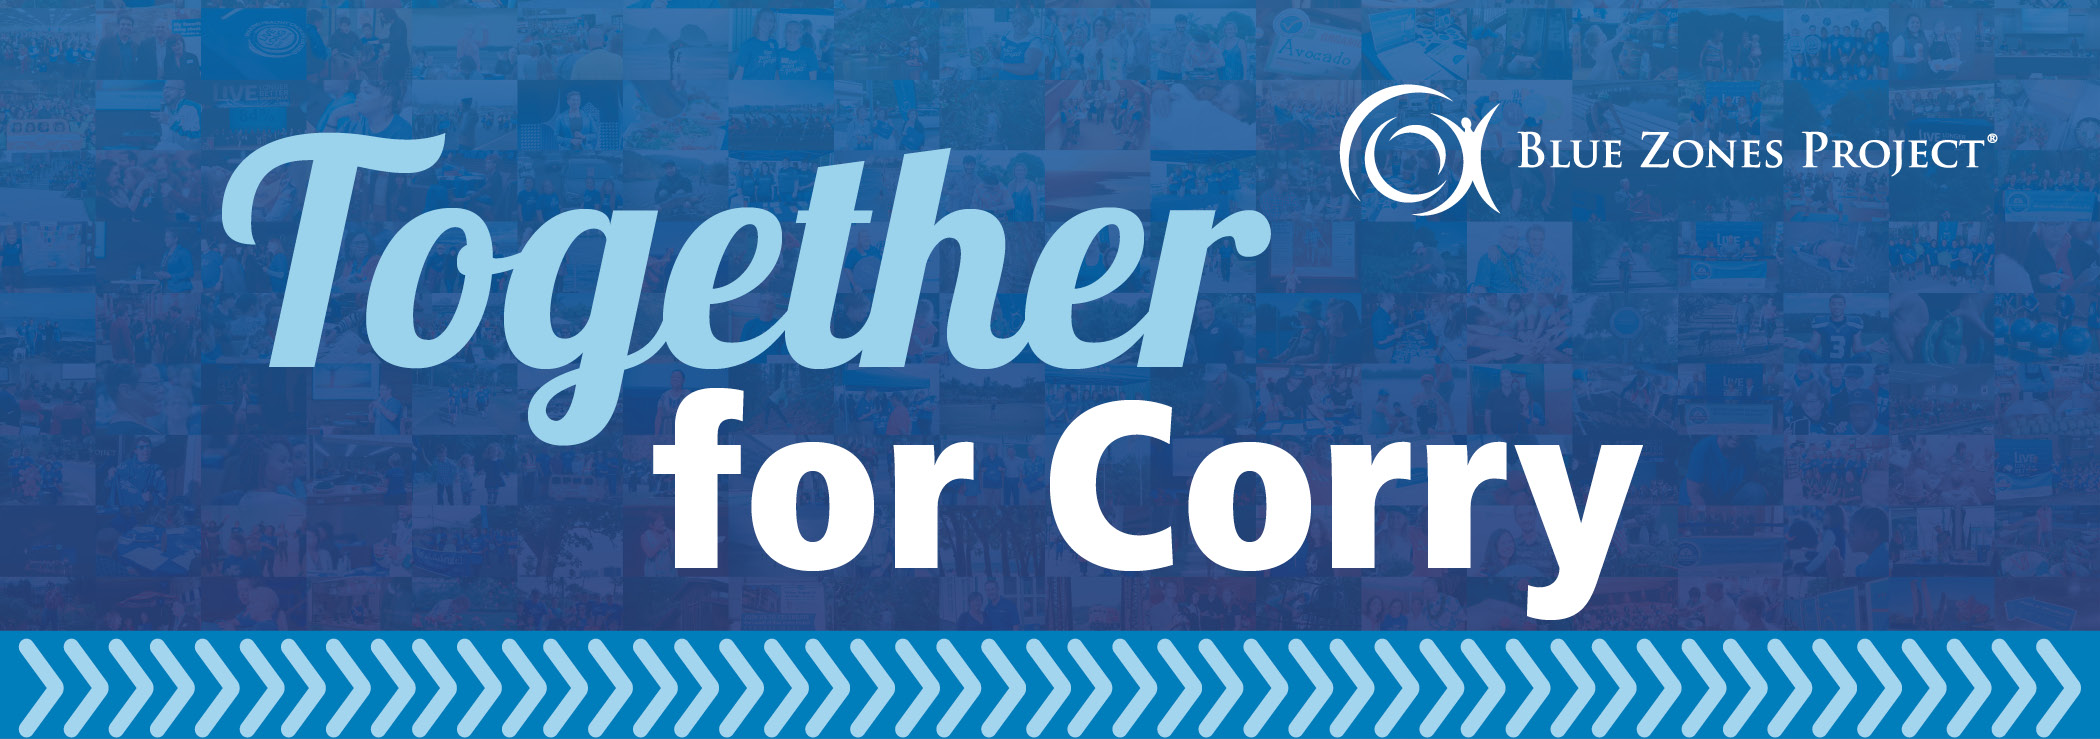 PA Corry Stakeholder Event Web Header